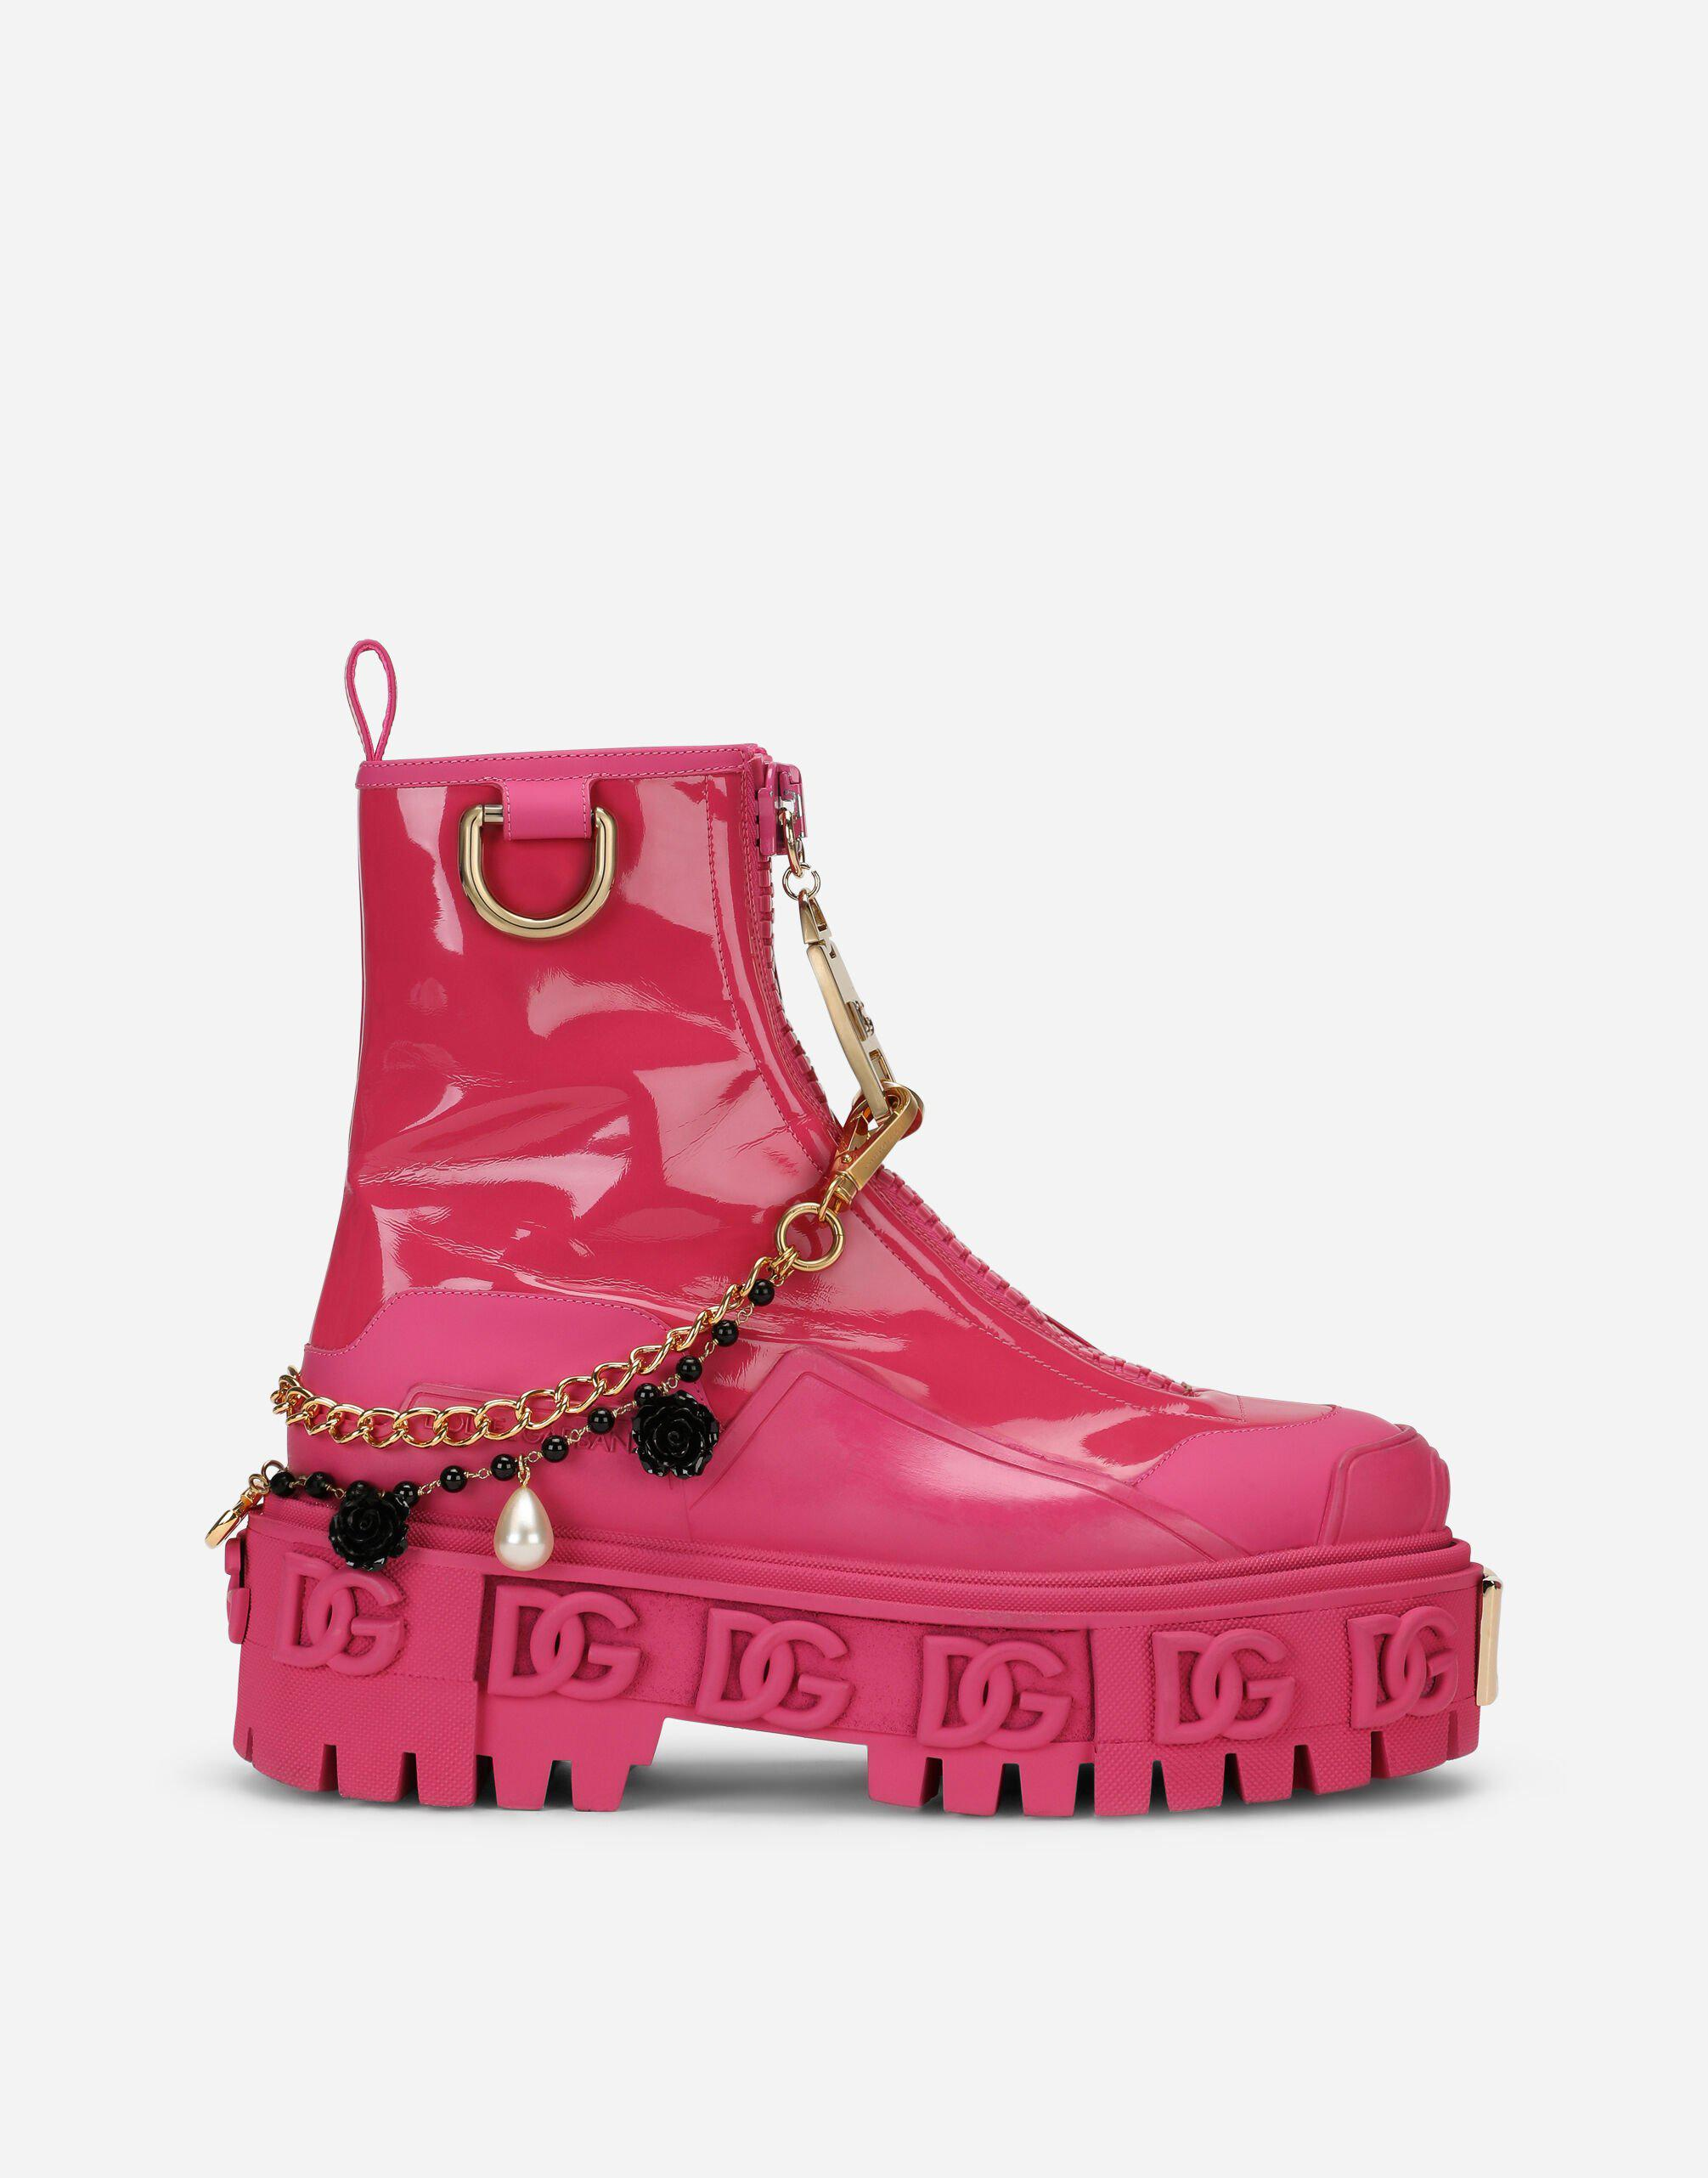 Rubberized calfskin and patent leather ankle boots with bejeweled chain and DG logo